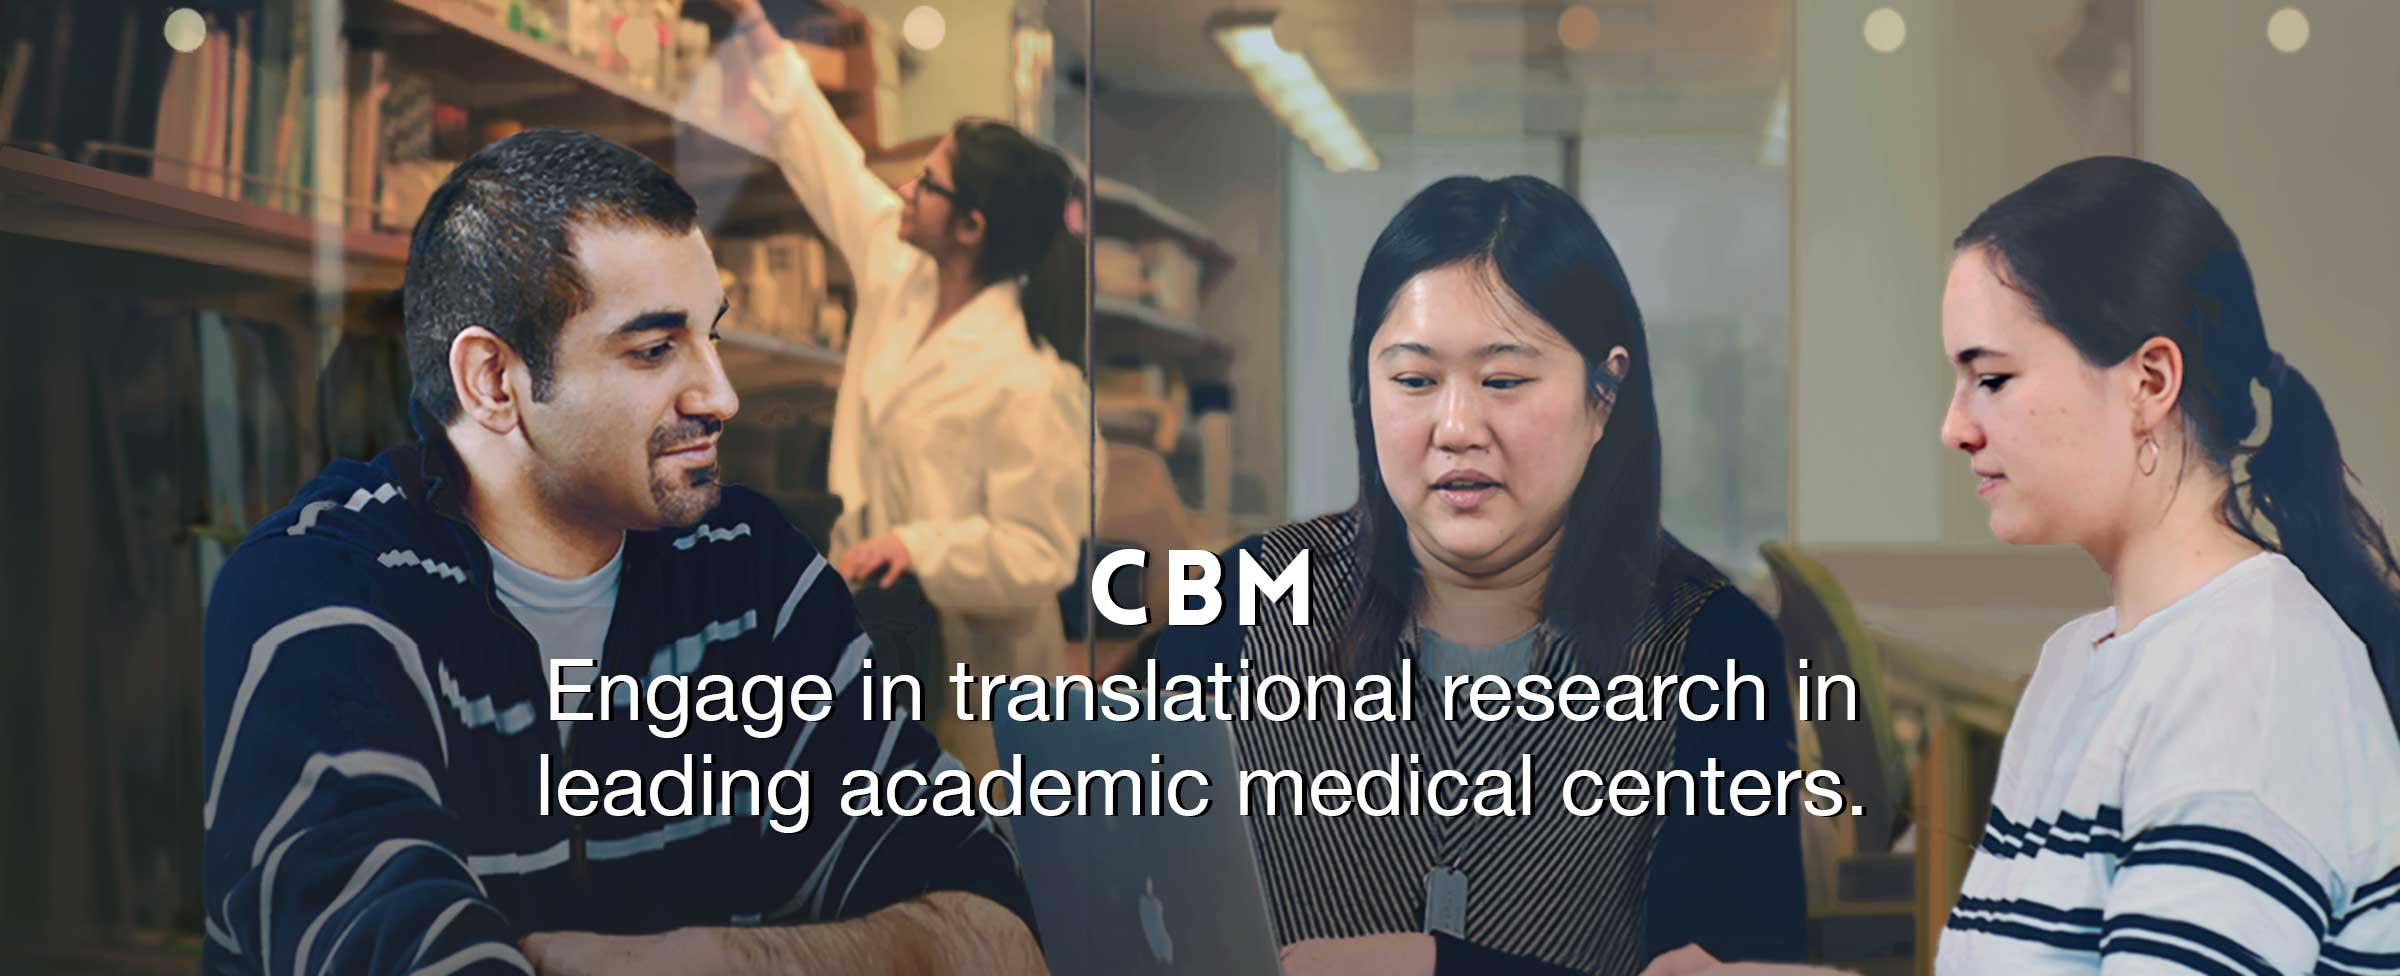 home-page-translational-research